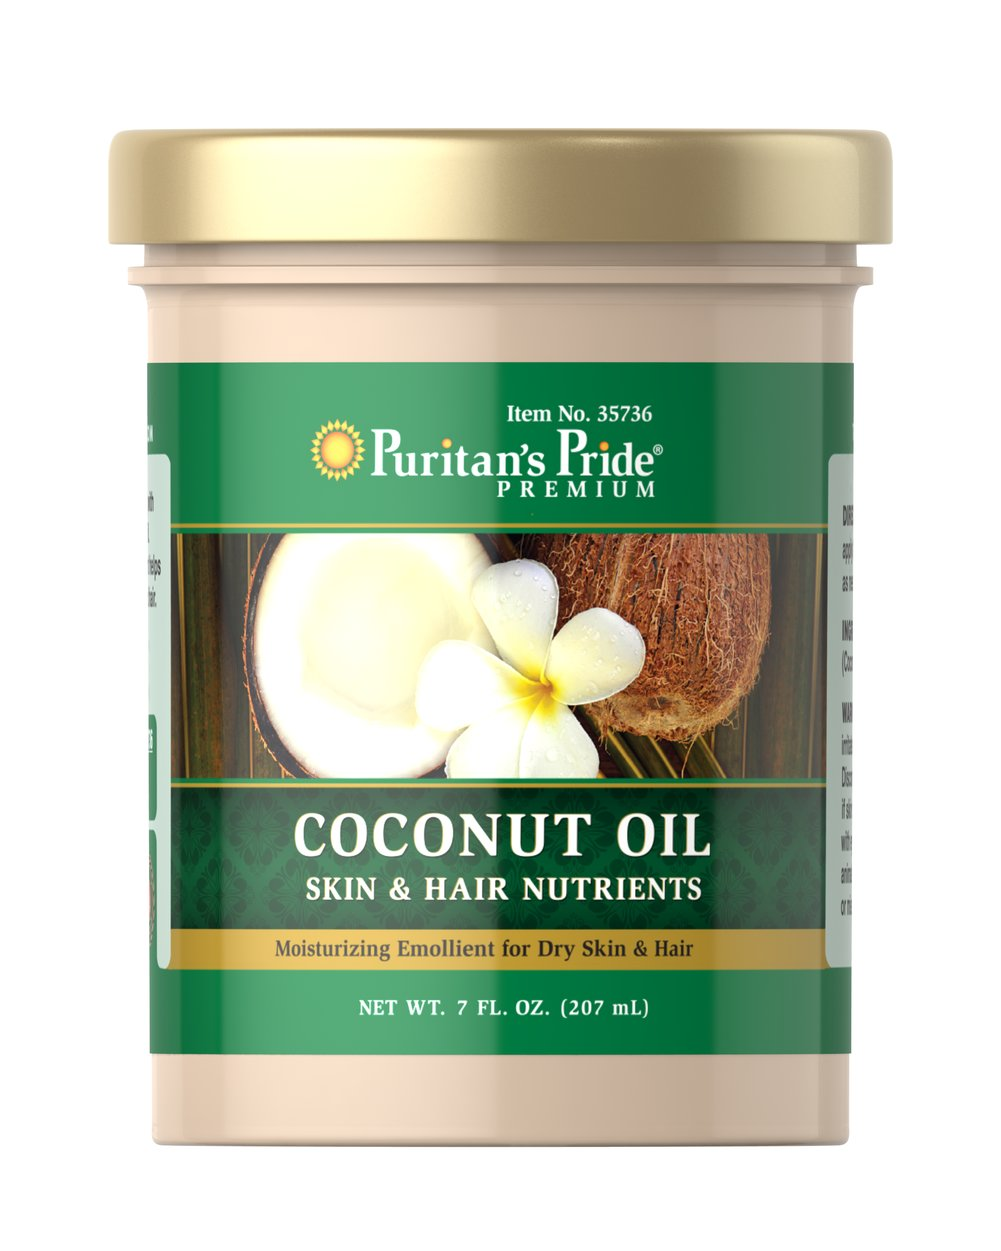 Coconut Oil for Skin & Hair <p>Pamper your body with  Coconut Oil! This exotic topical nutrient will help moisturize and soften dry, rough skin – and can even be used in your hair! And like the name implies, there's just one ingredient: coconut oil! No fillers or added fragrances.</p> 7 fl oz Oil  $9.99